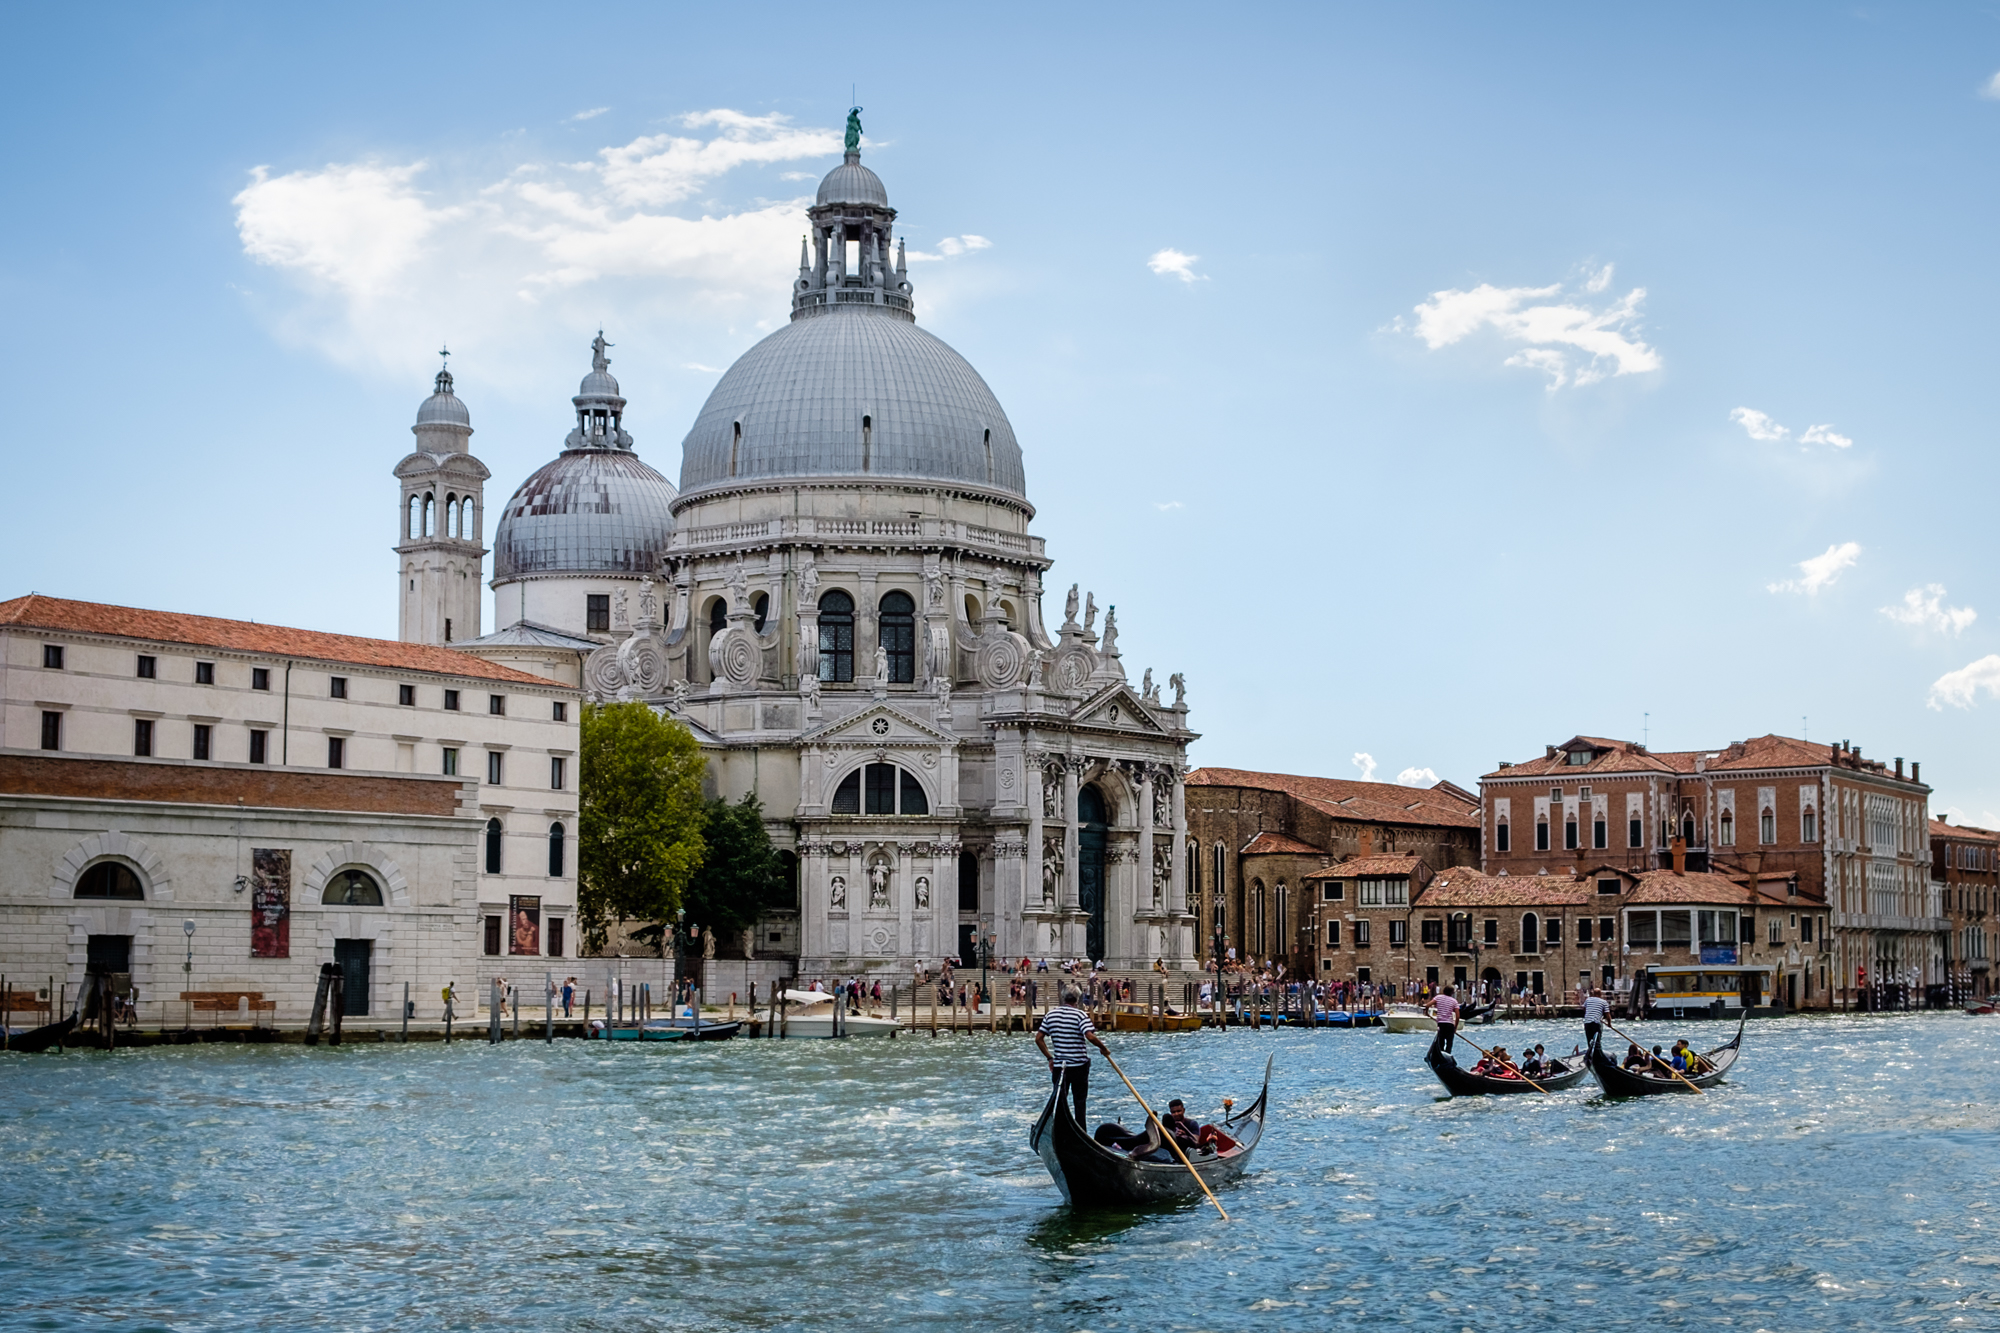 Photo of Basilica di Santa Maria della Salute by Trevor Sherwin